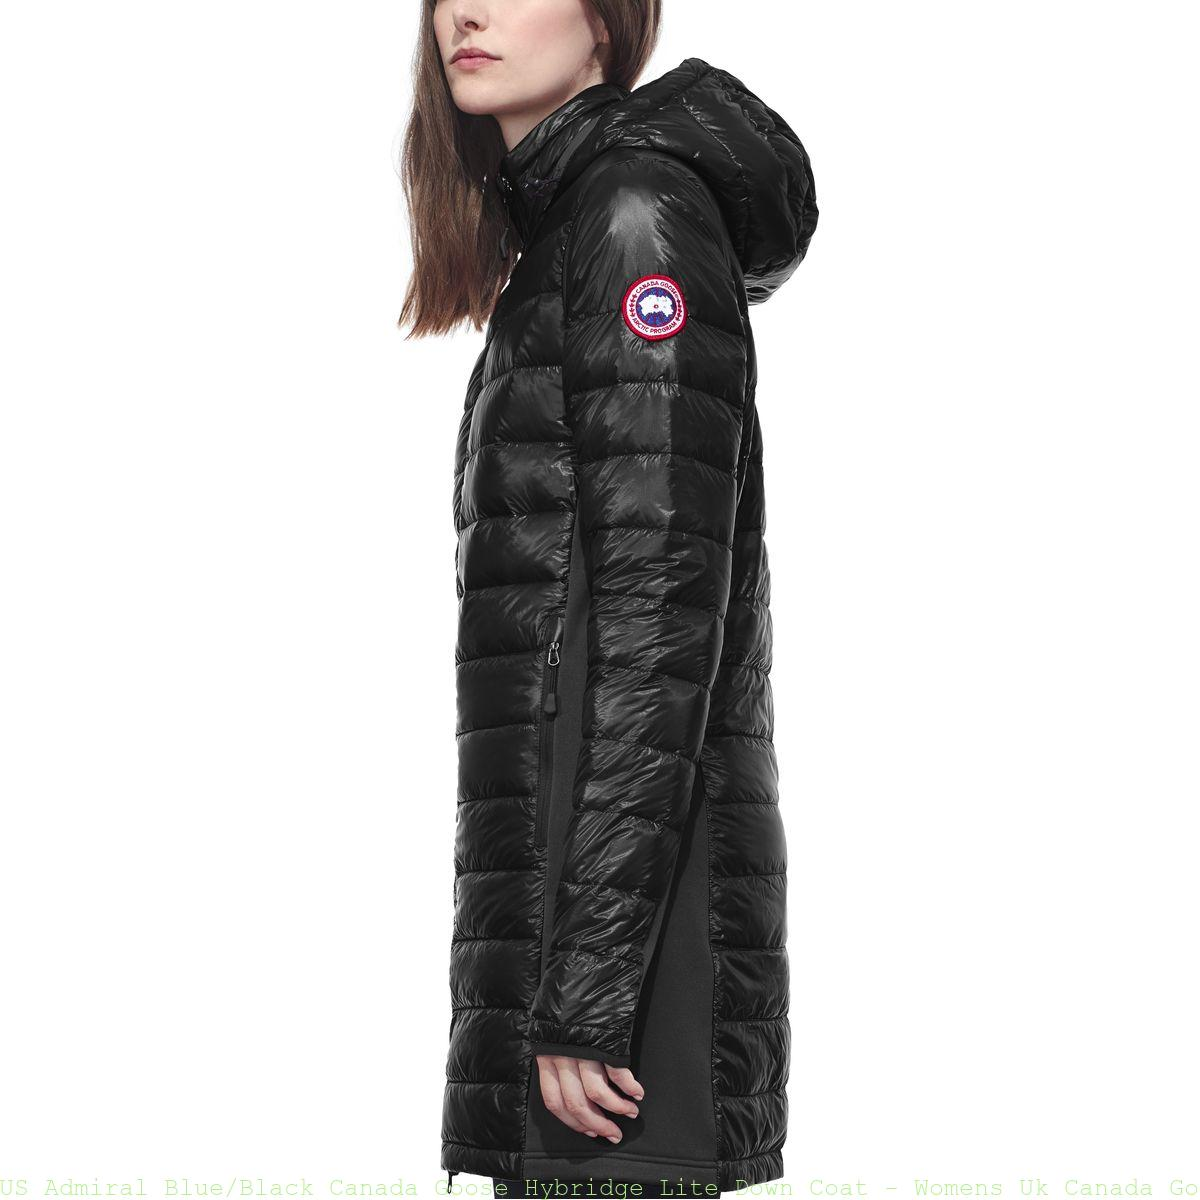 c8b1e27f495 US Admiral Blue/Black Canada Goose Hybridge Lite Down Coat – Womens ...